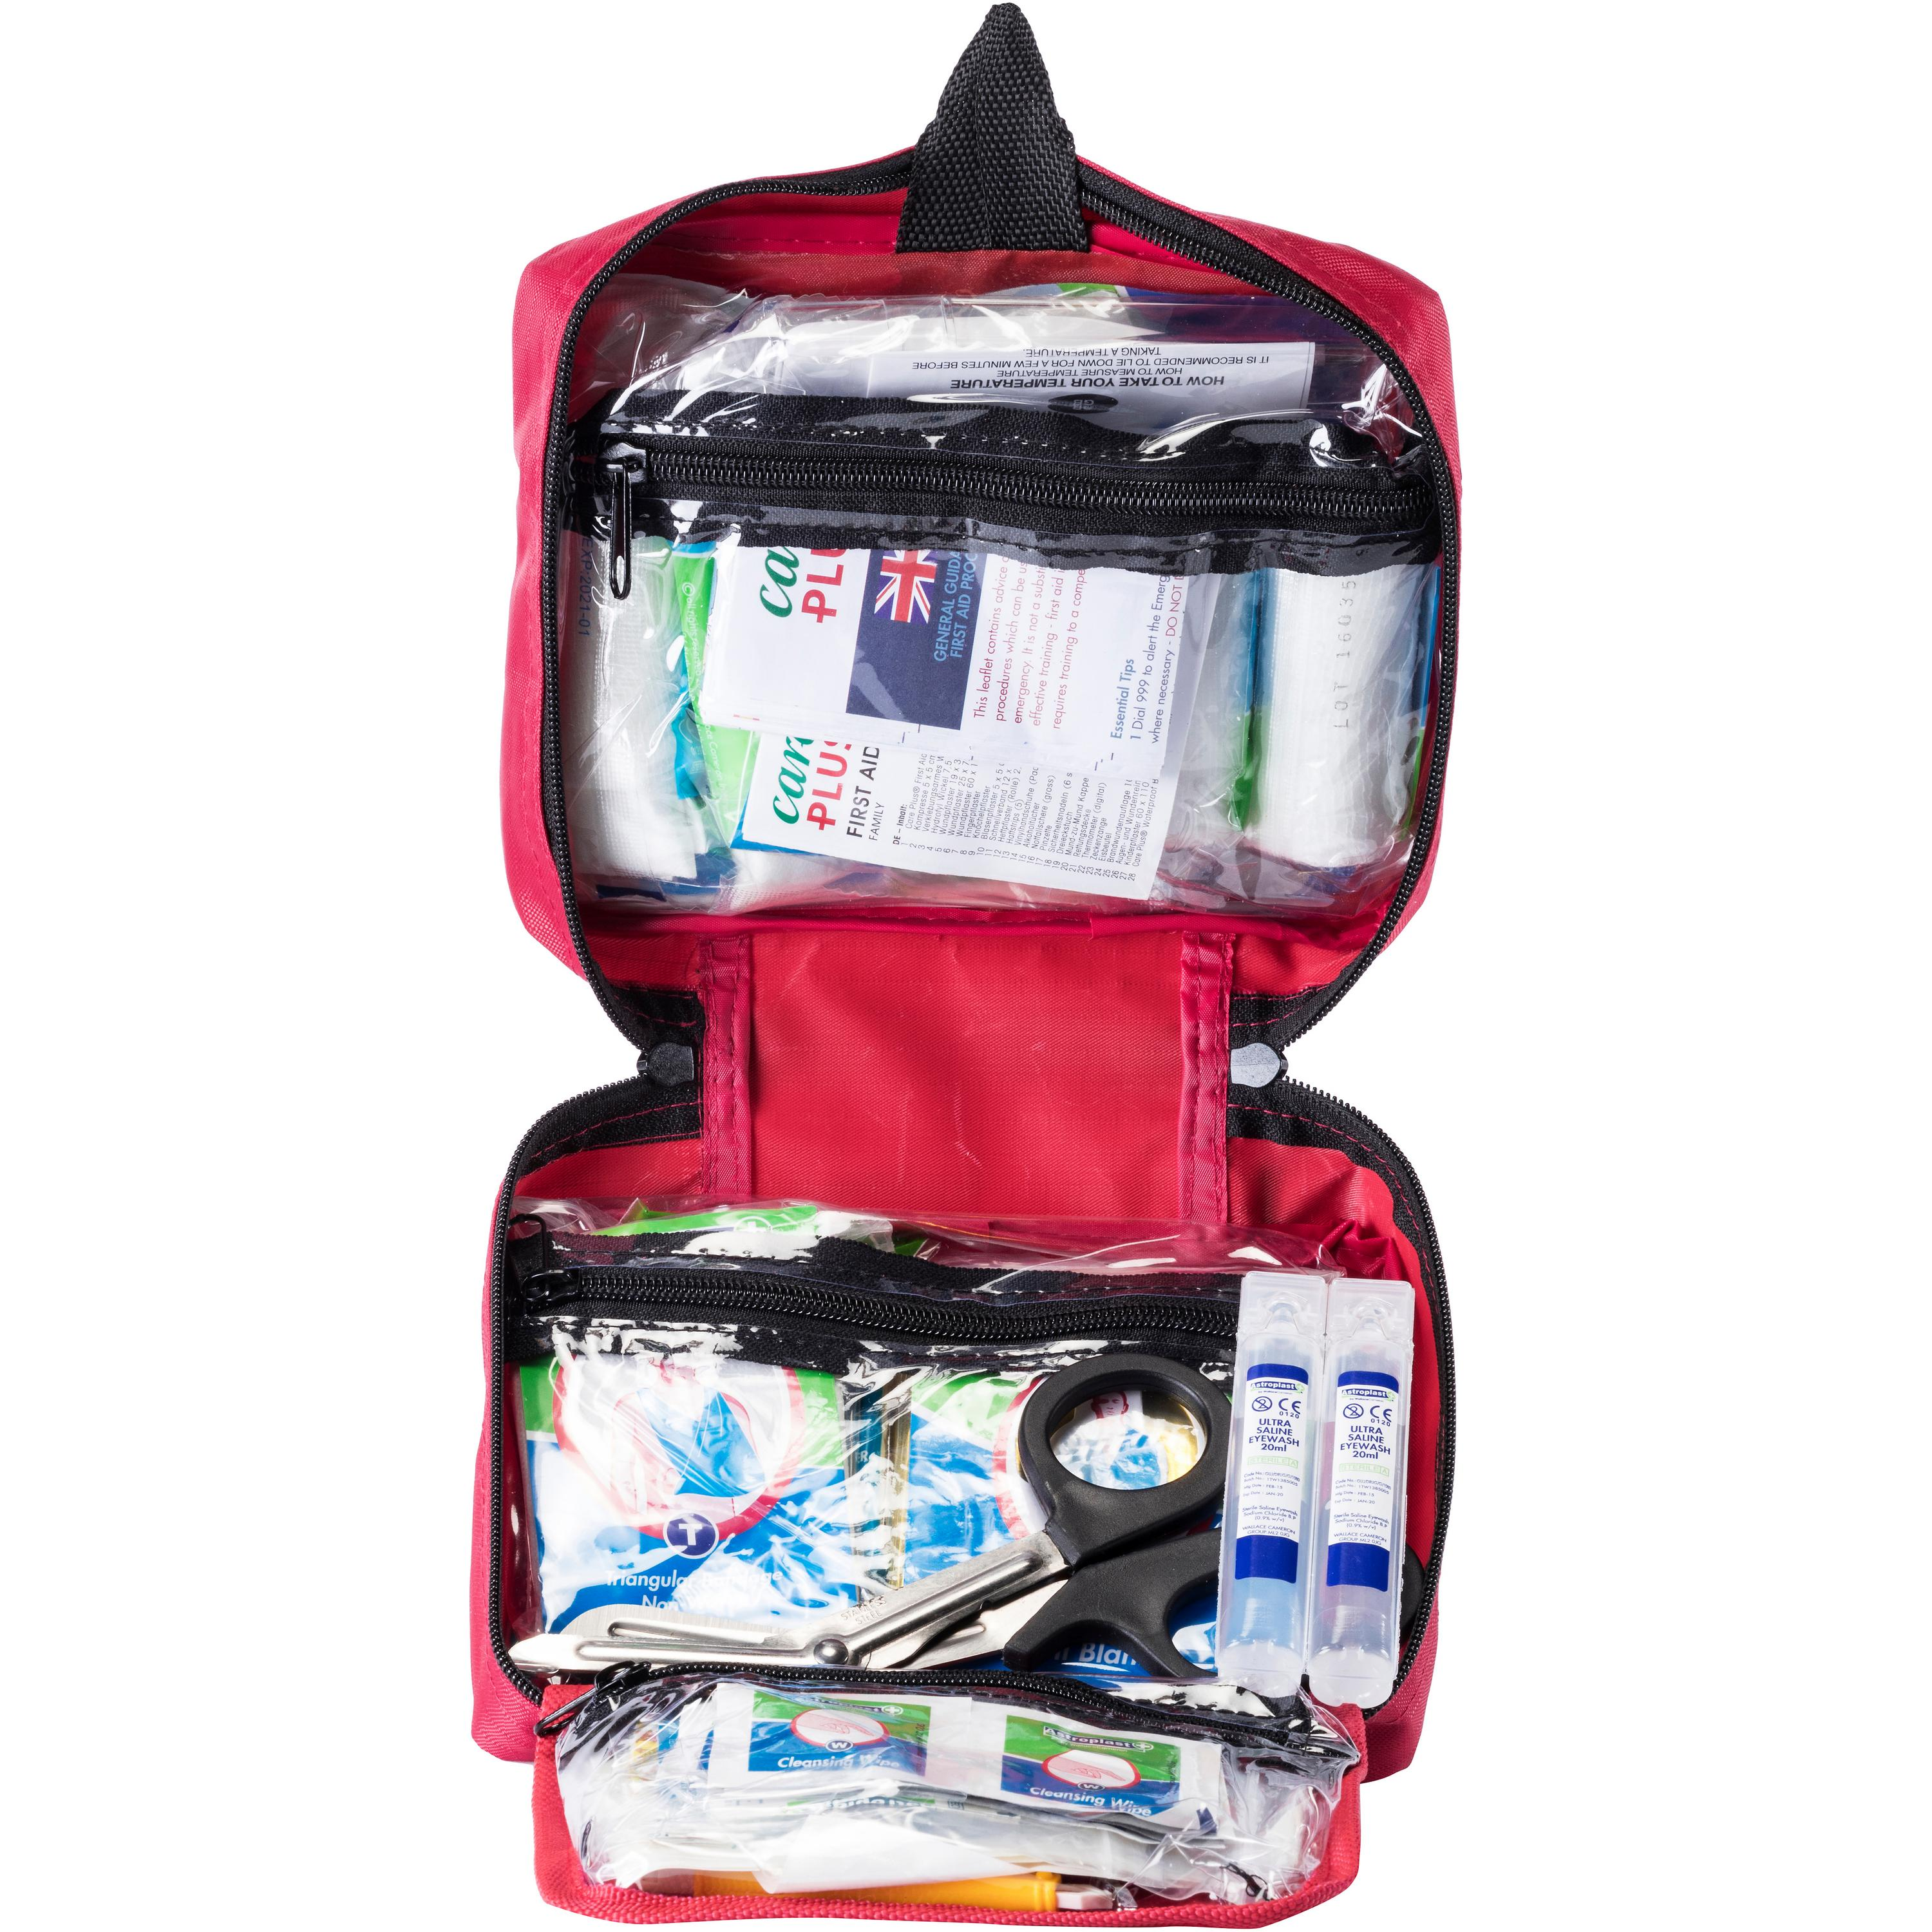 Image of Care Plus First Aid Kit Family Erste Hilfe Set